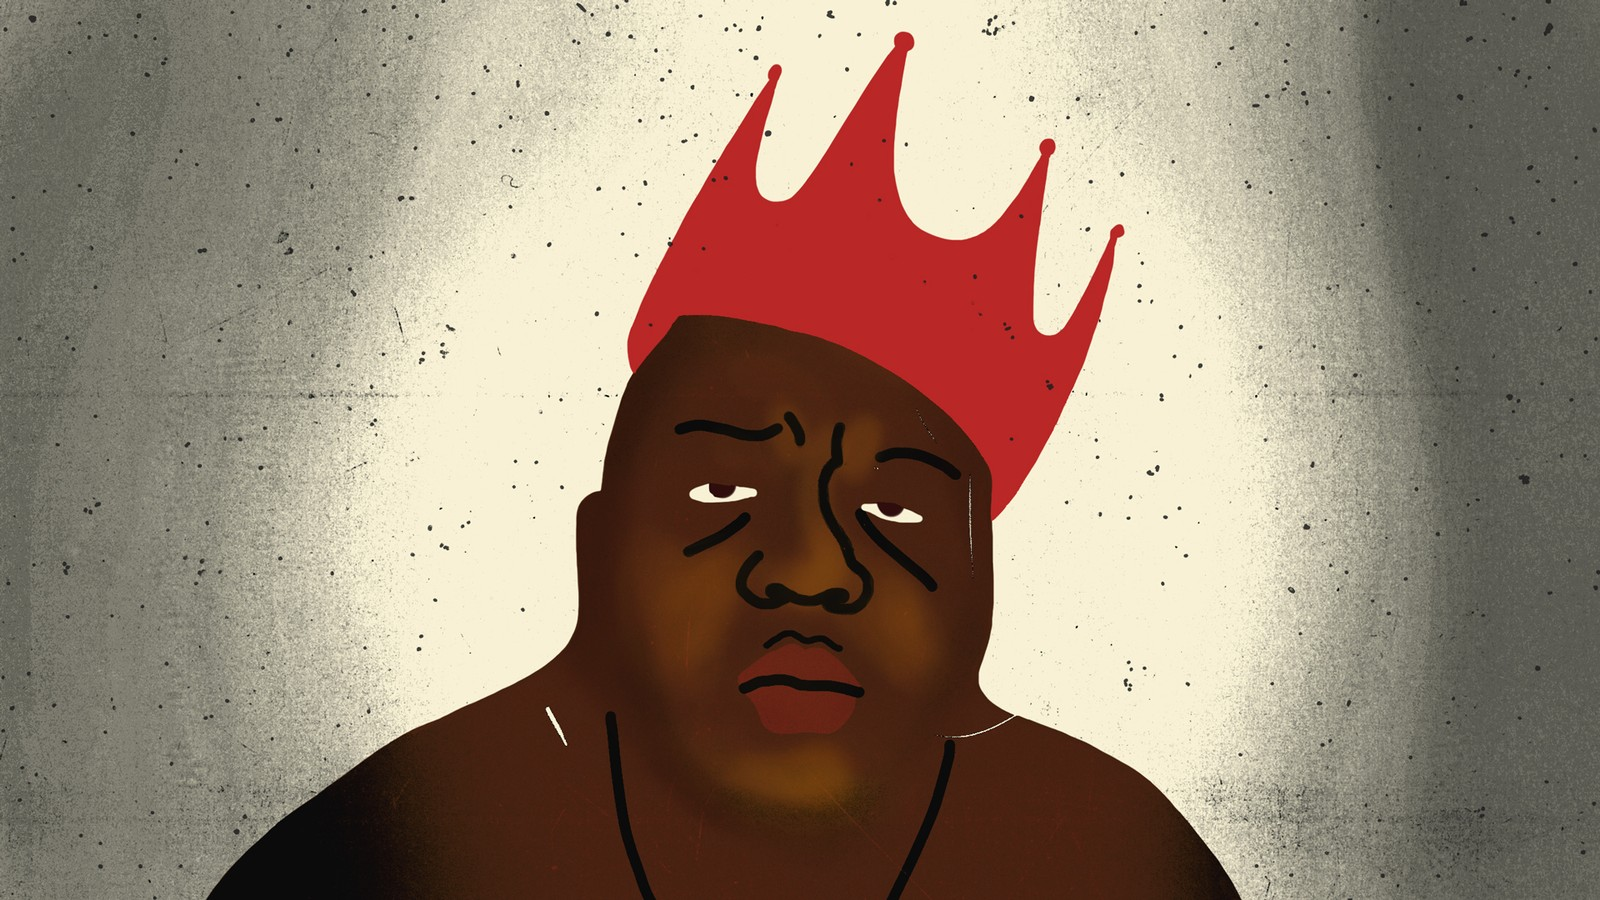 The Crushing Despair of Notorious B.I.G's 'Ready to Die'